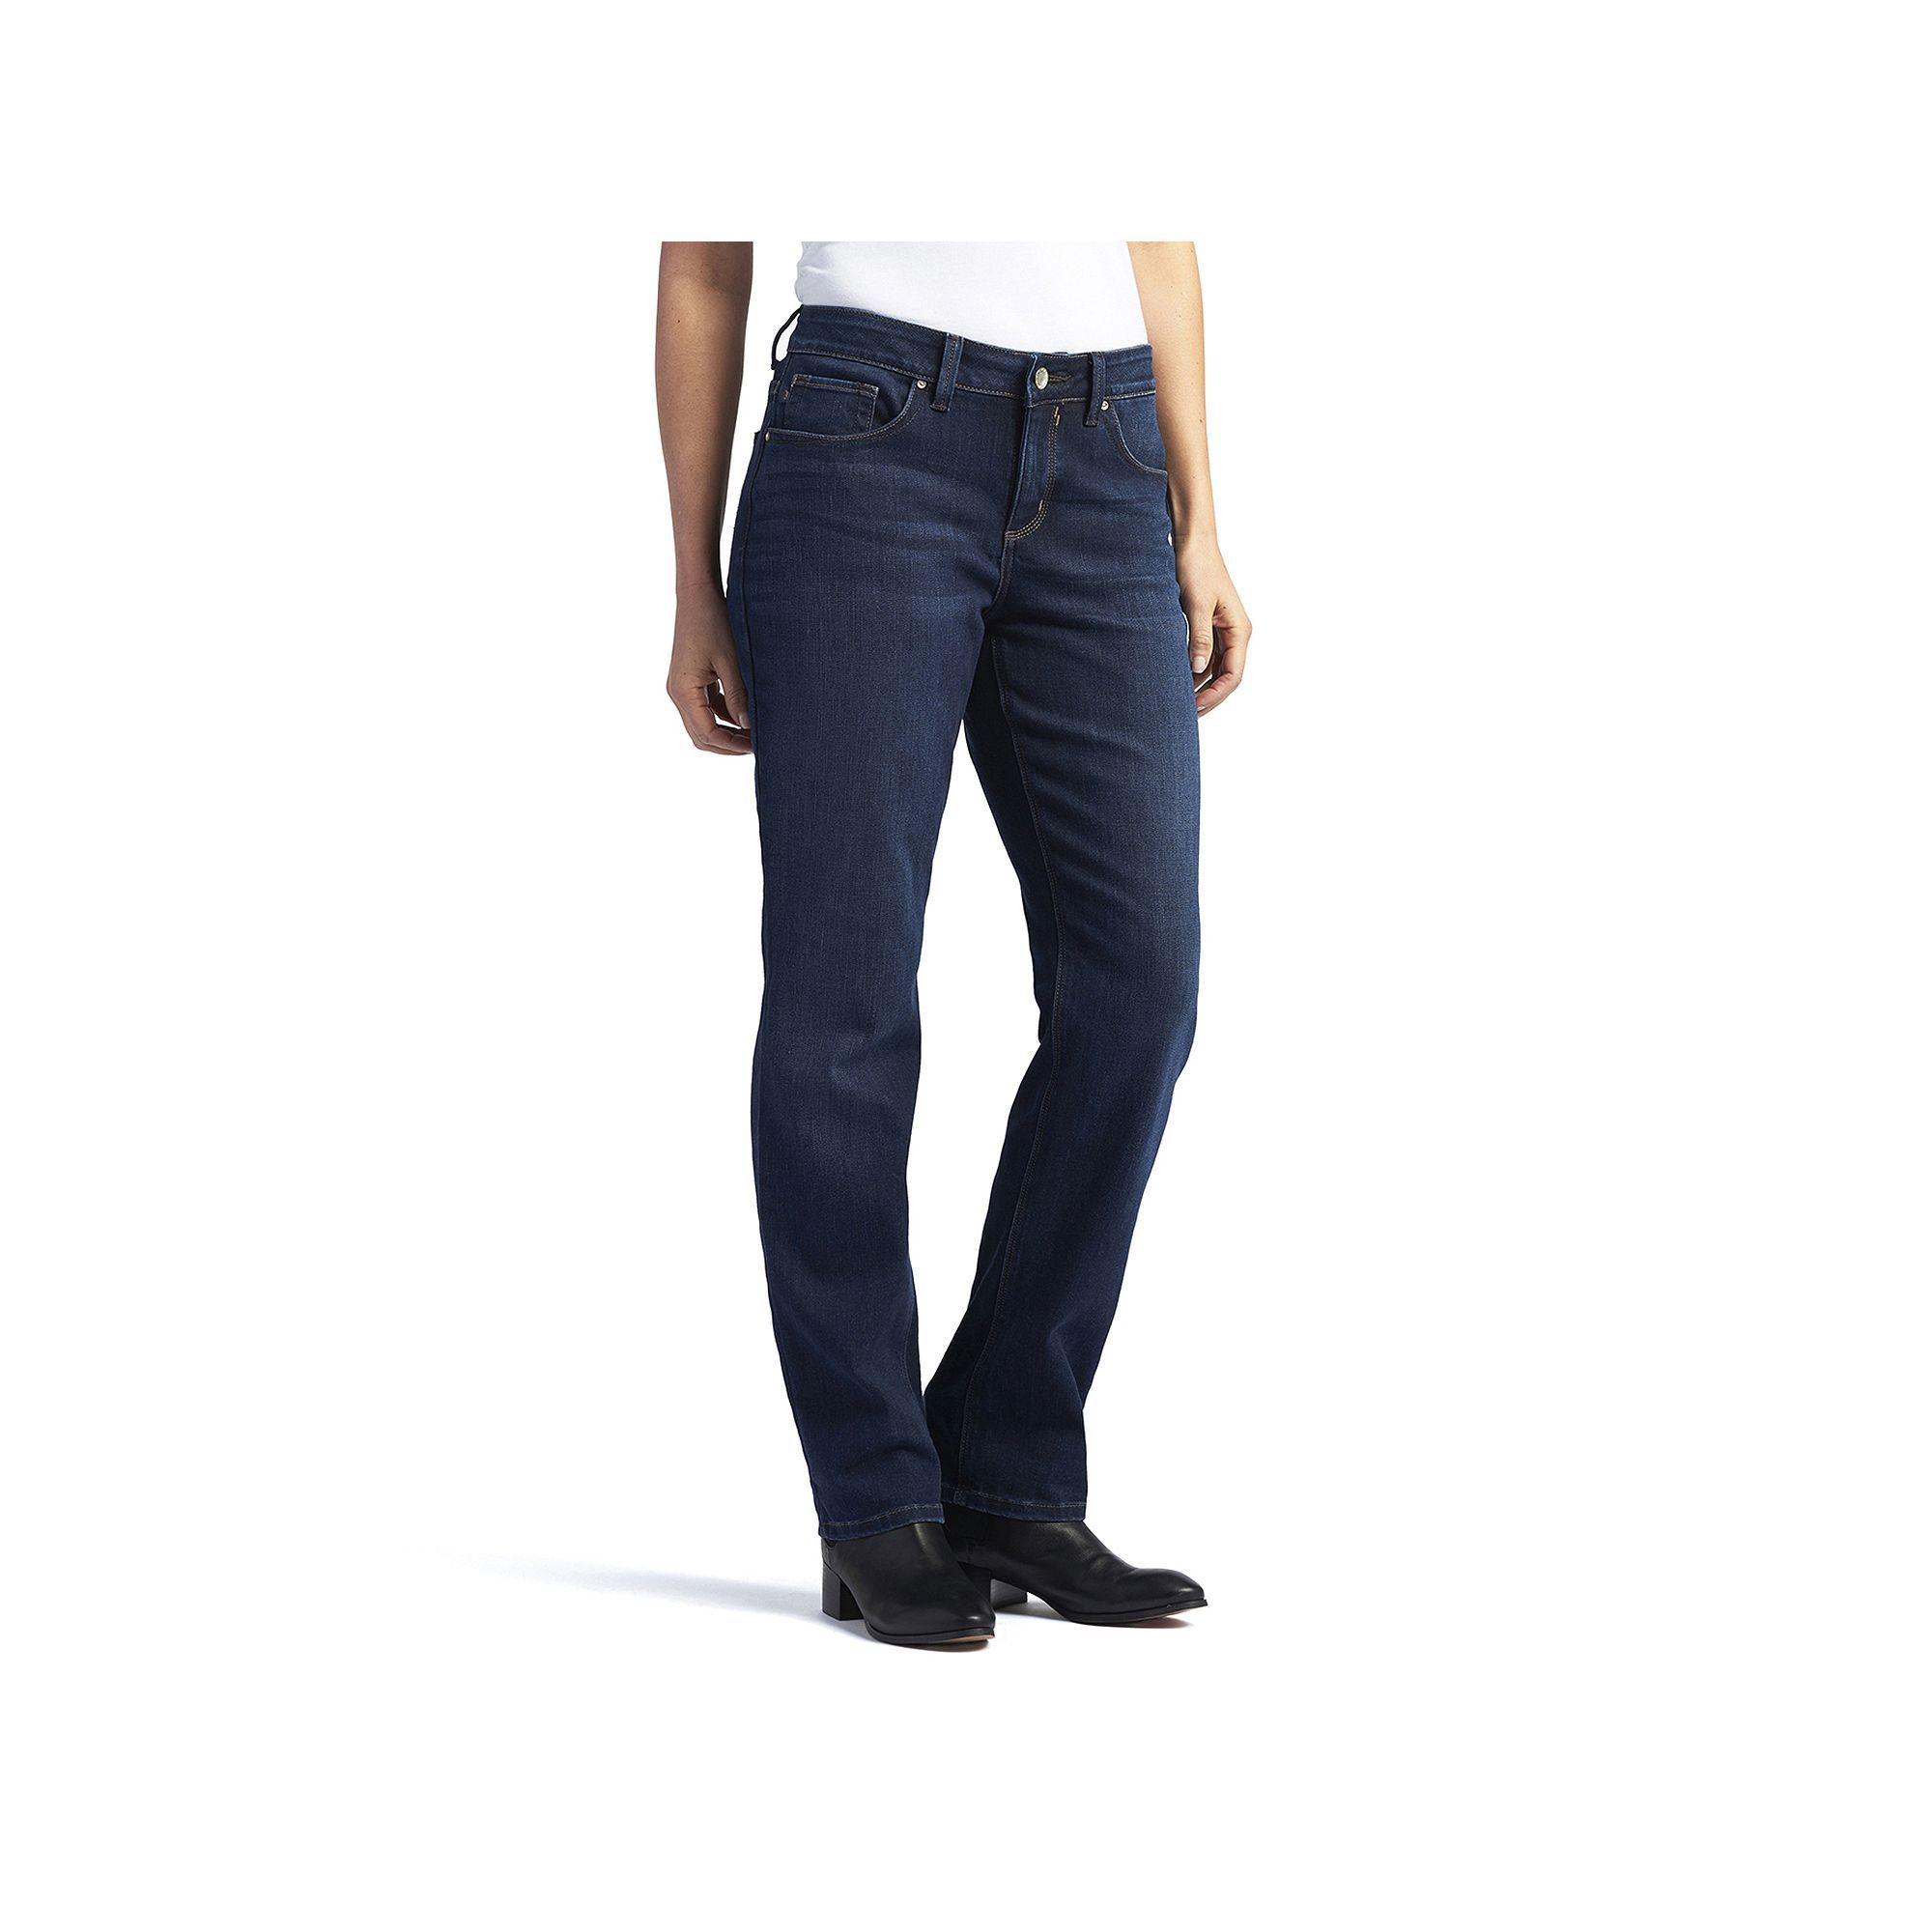 jeans wid image plus straight pants comfort leg fit product hei op upc waist sharpen for lee comforter twill